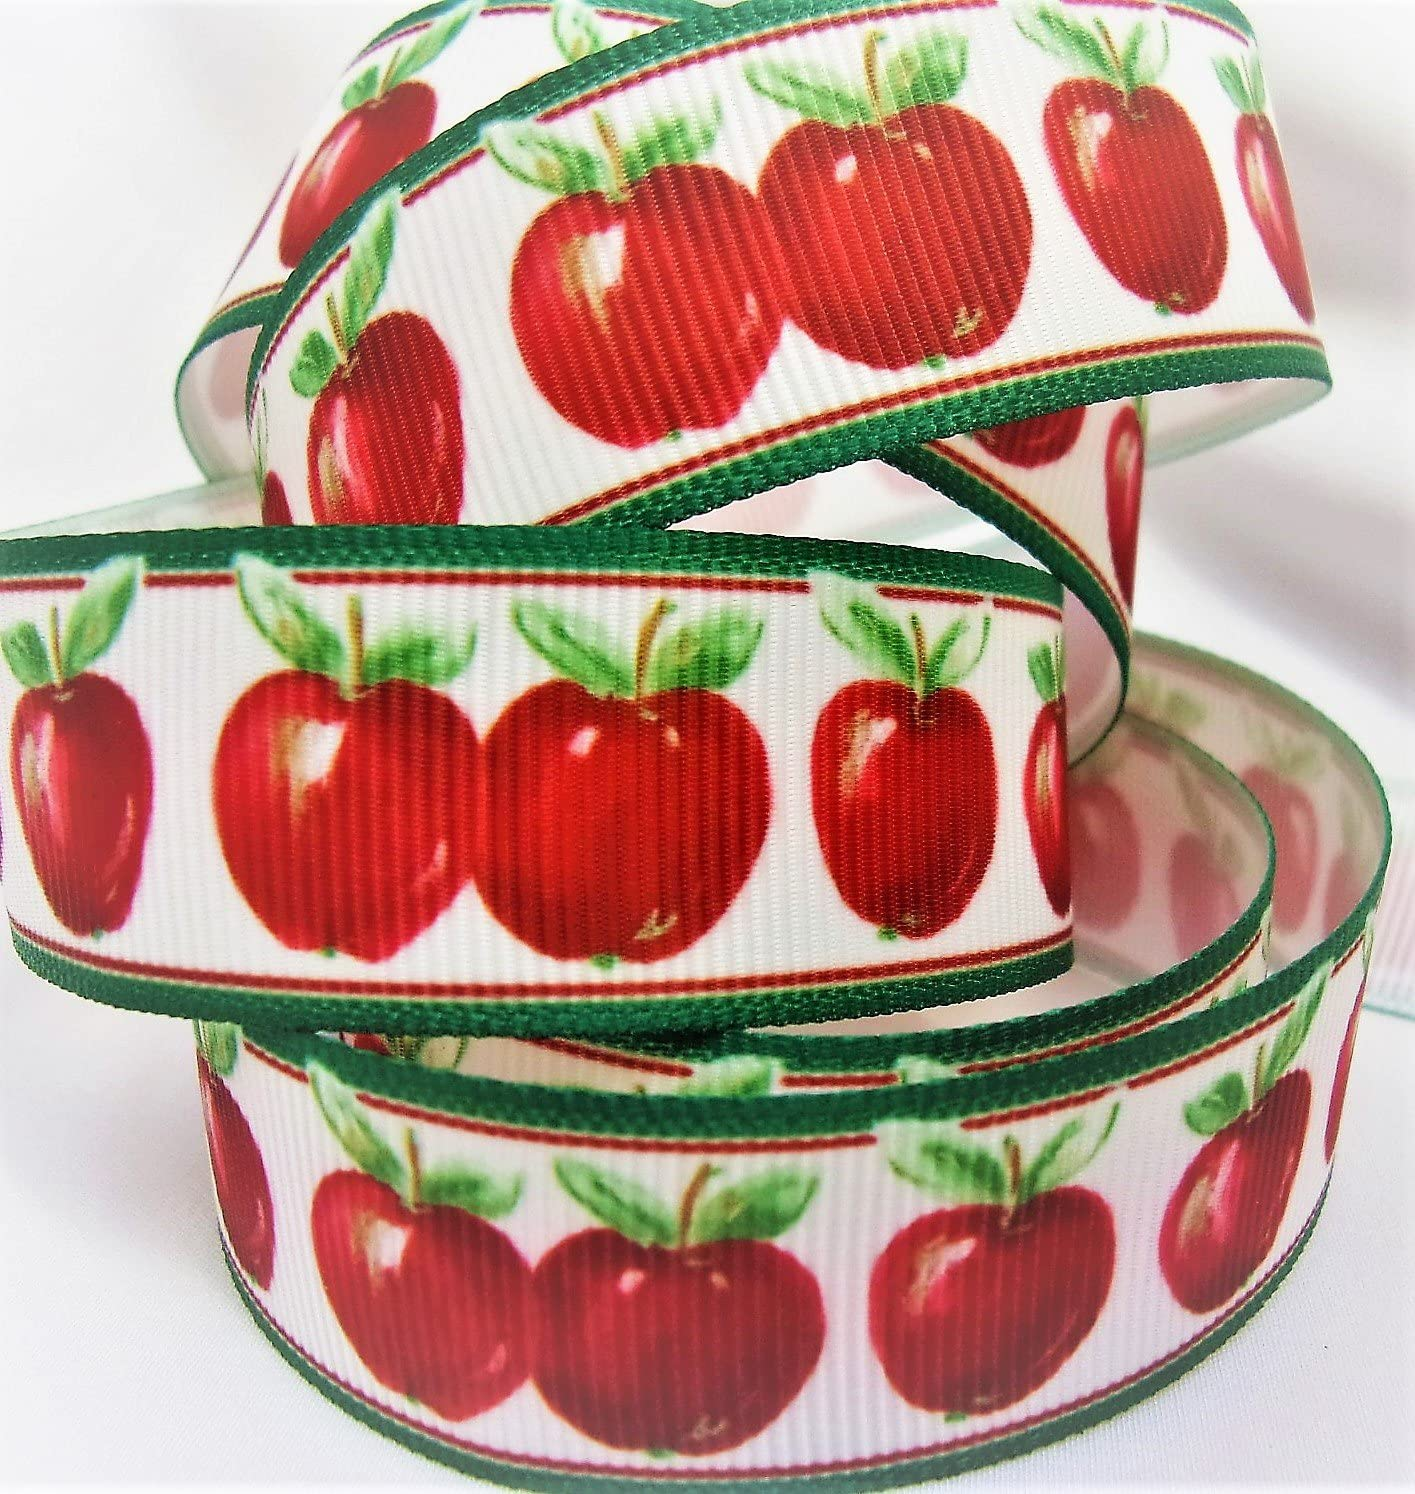 "Grosgrain Ribbon Red Apple Print - 7/8"" Wide - 10 Yards - for Hair Bows and Crafts!"